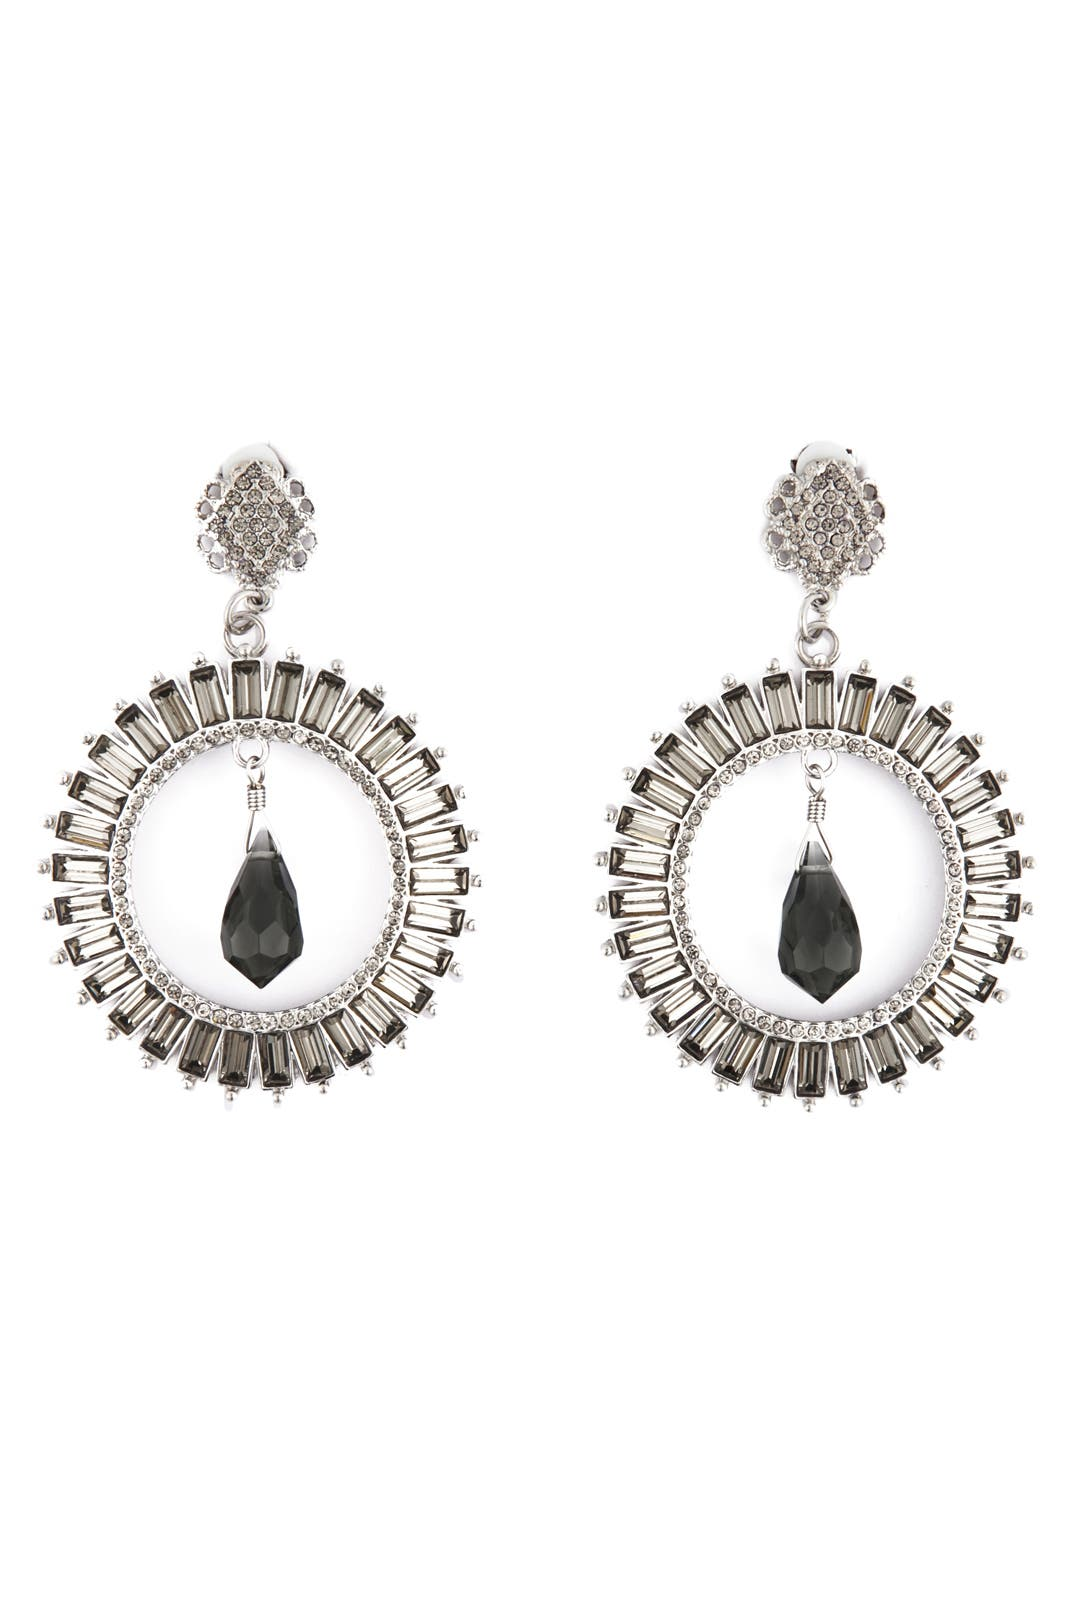 Eye of Eros Earrings by Badgley Mischka Jewelry